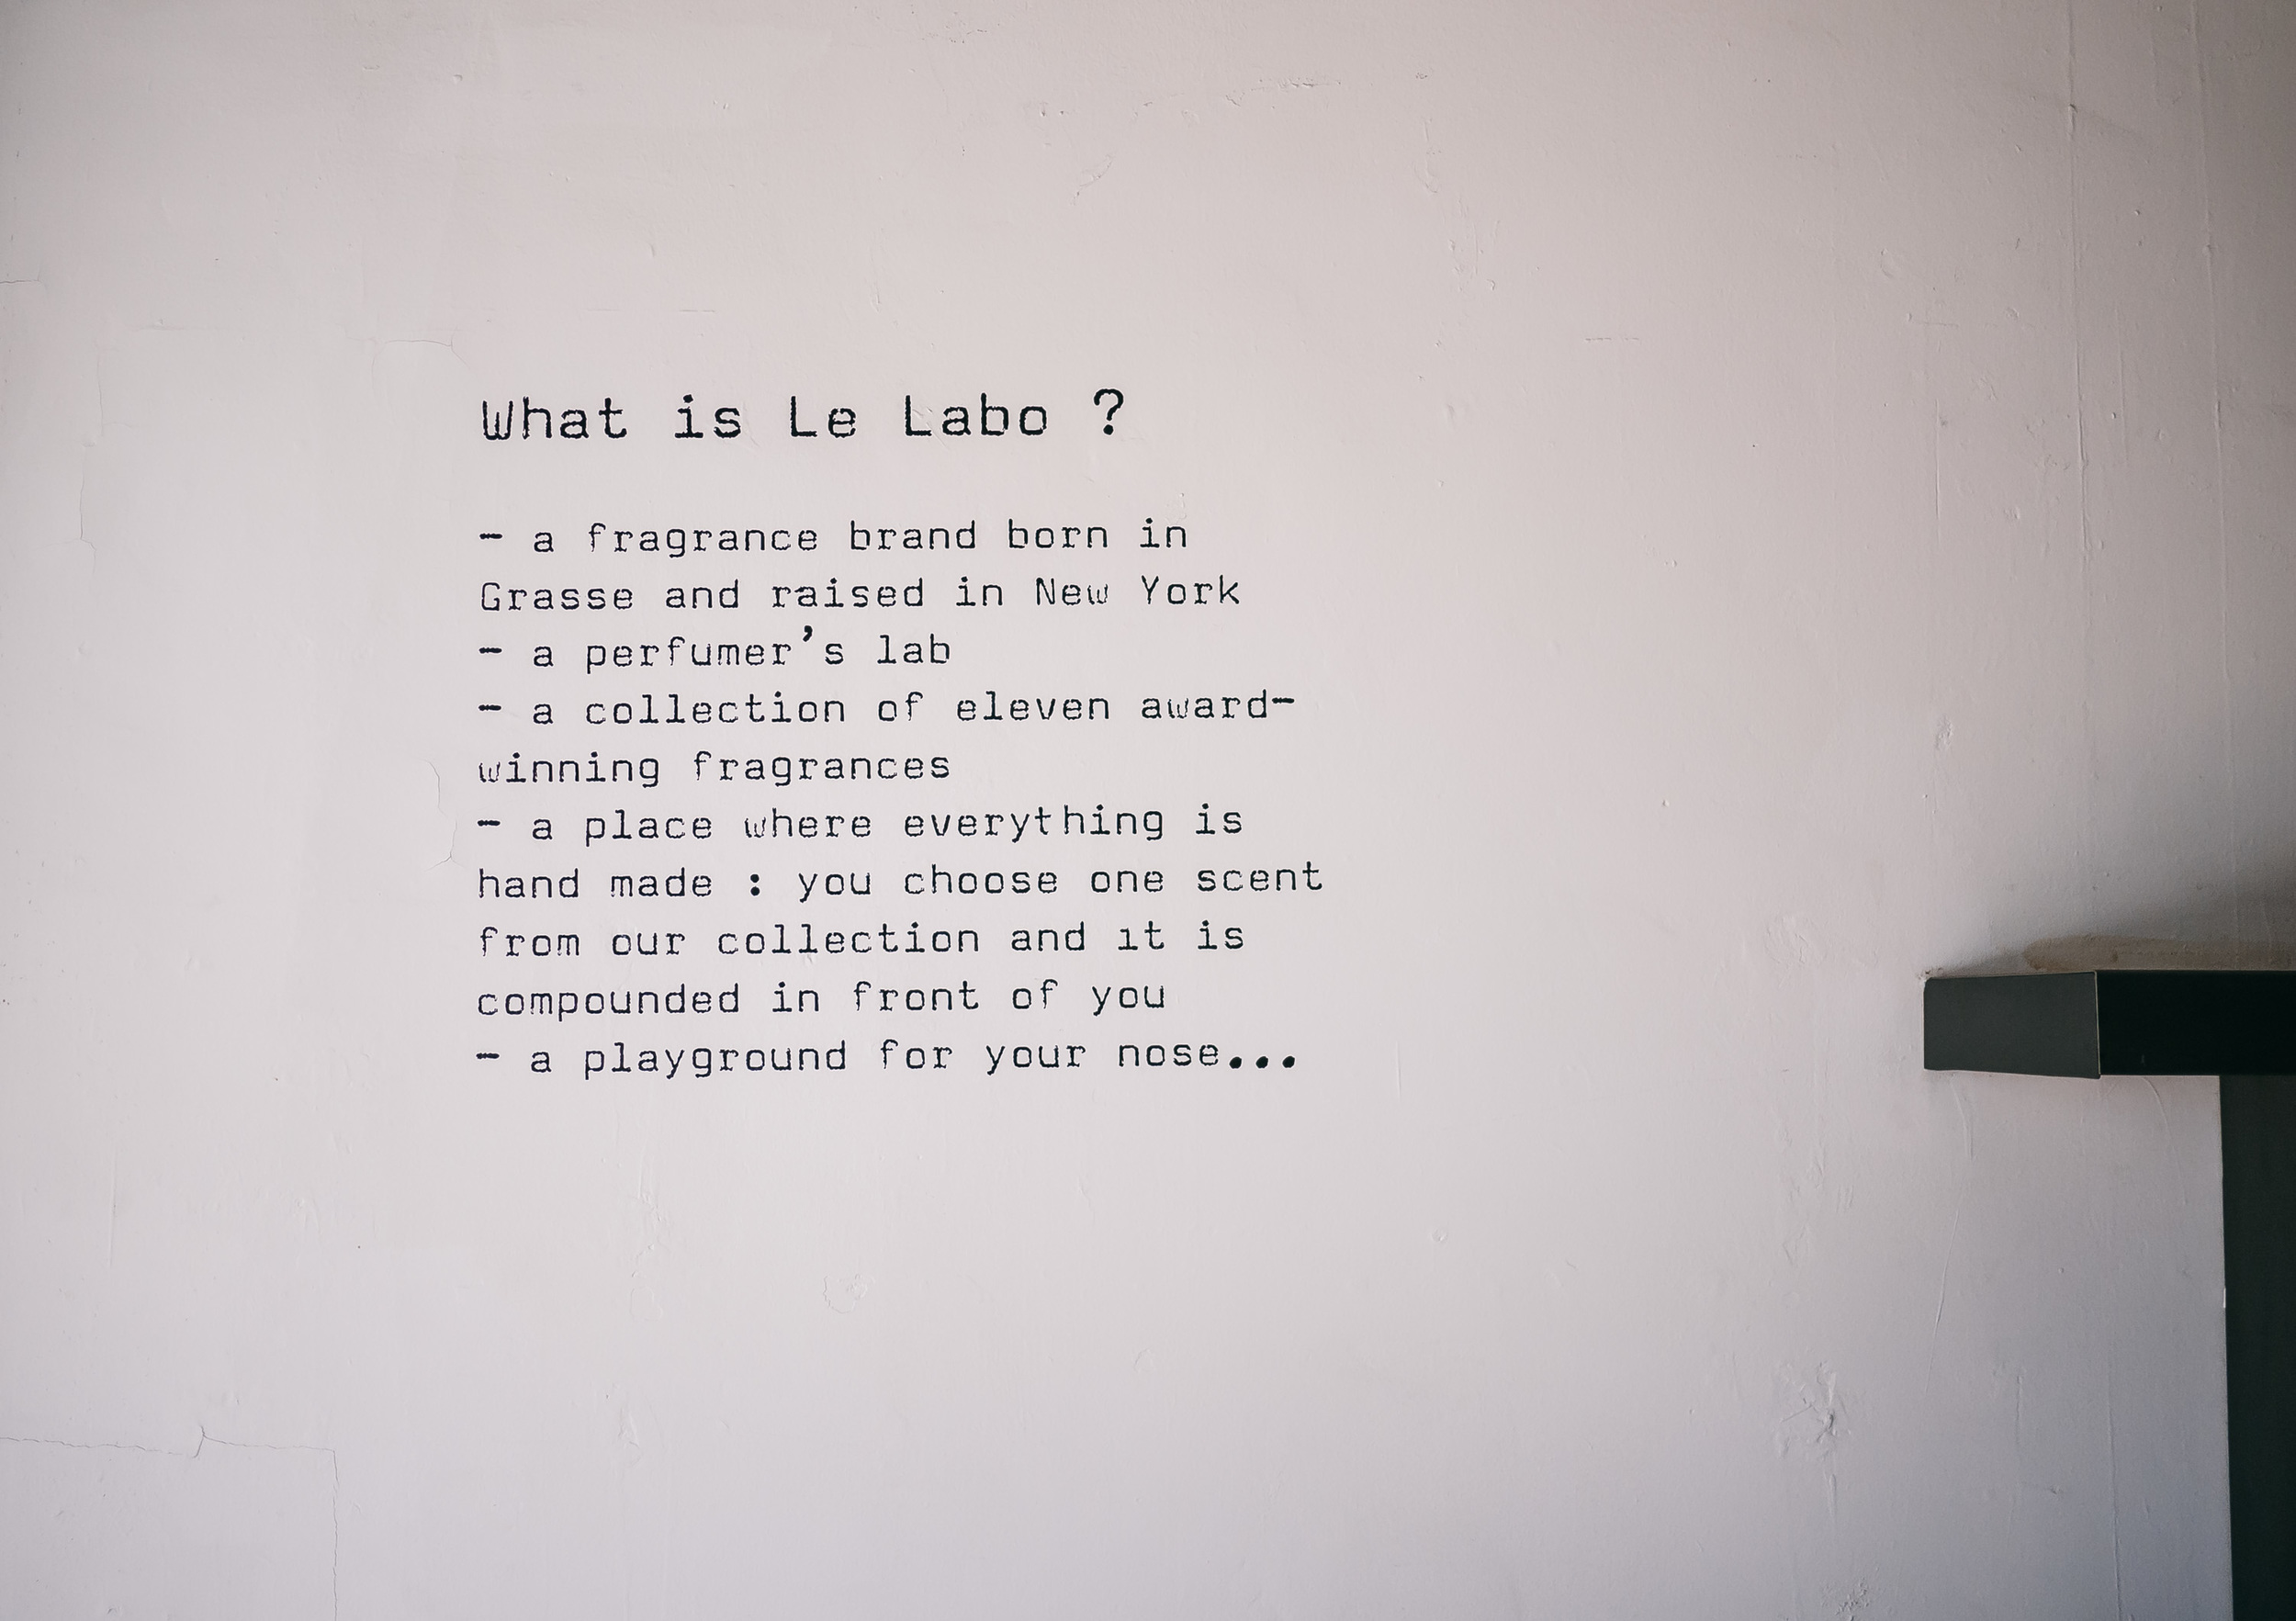 le-labo-los-angeles-the-scent-story-30.jpg